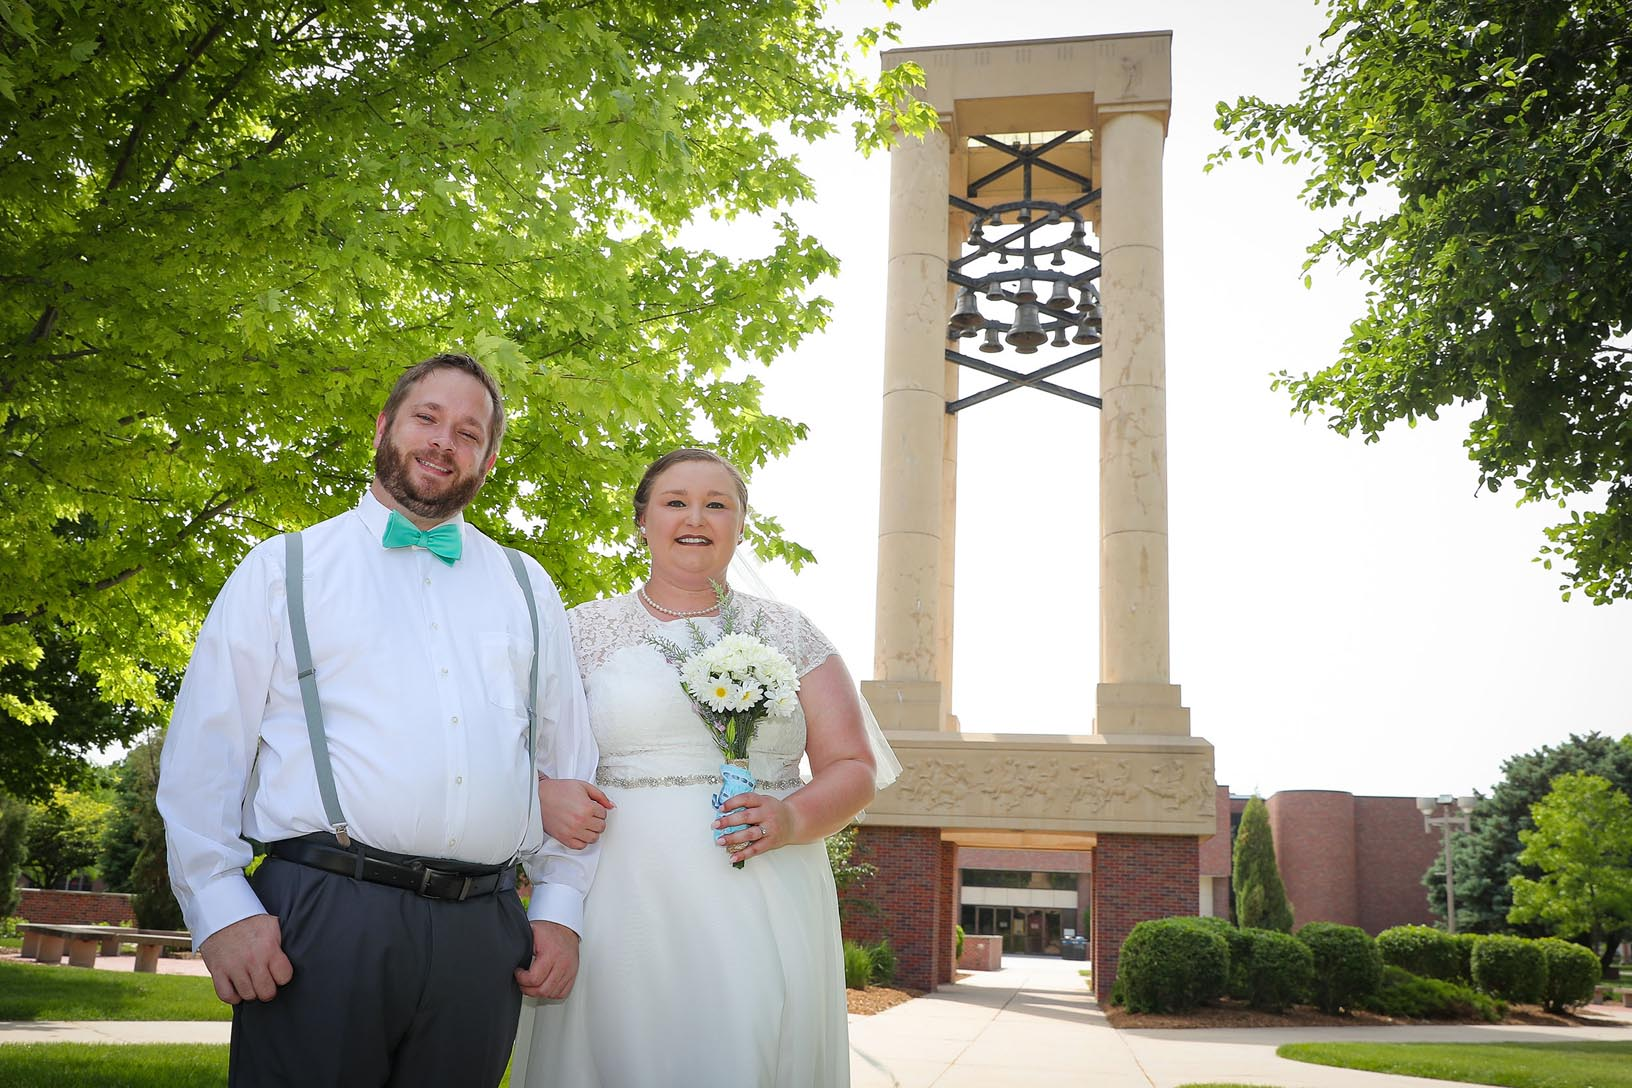 Nick Hobbs and Alexis Page were married Saturday on the UNK campus. Hobbs is an assistant professor in the UNK Department of Biology and Page earned her bachelor's and master's degrees from UNK. (Photos by Corbey R. Dorsey, UNK Communications)